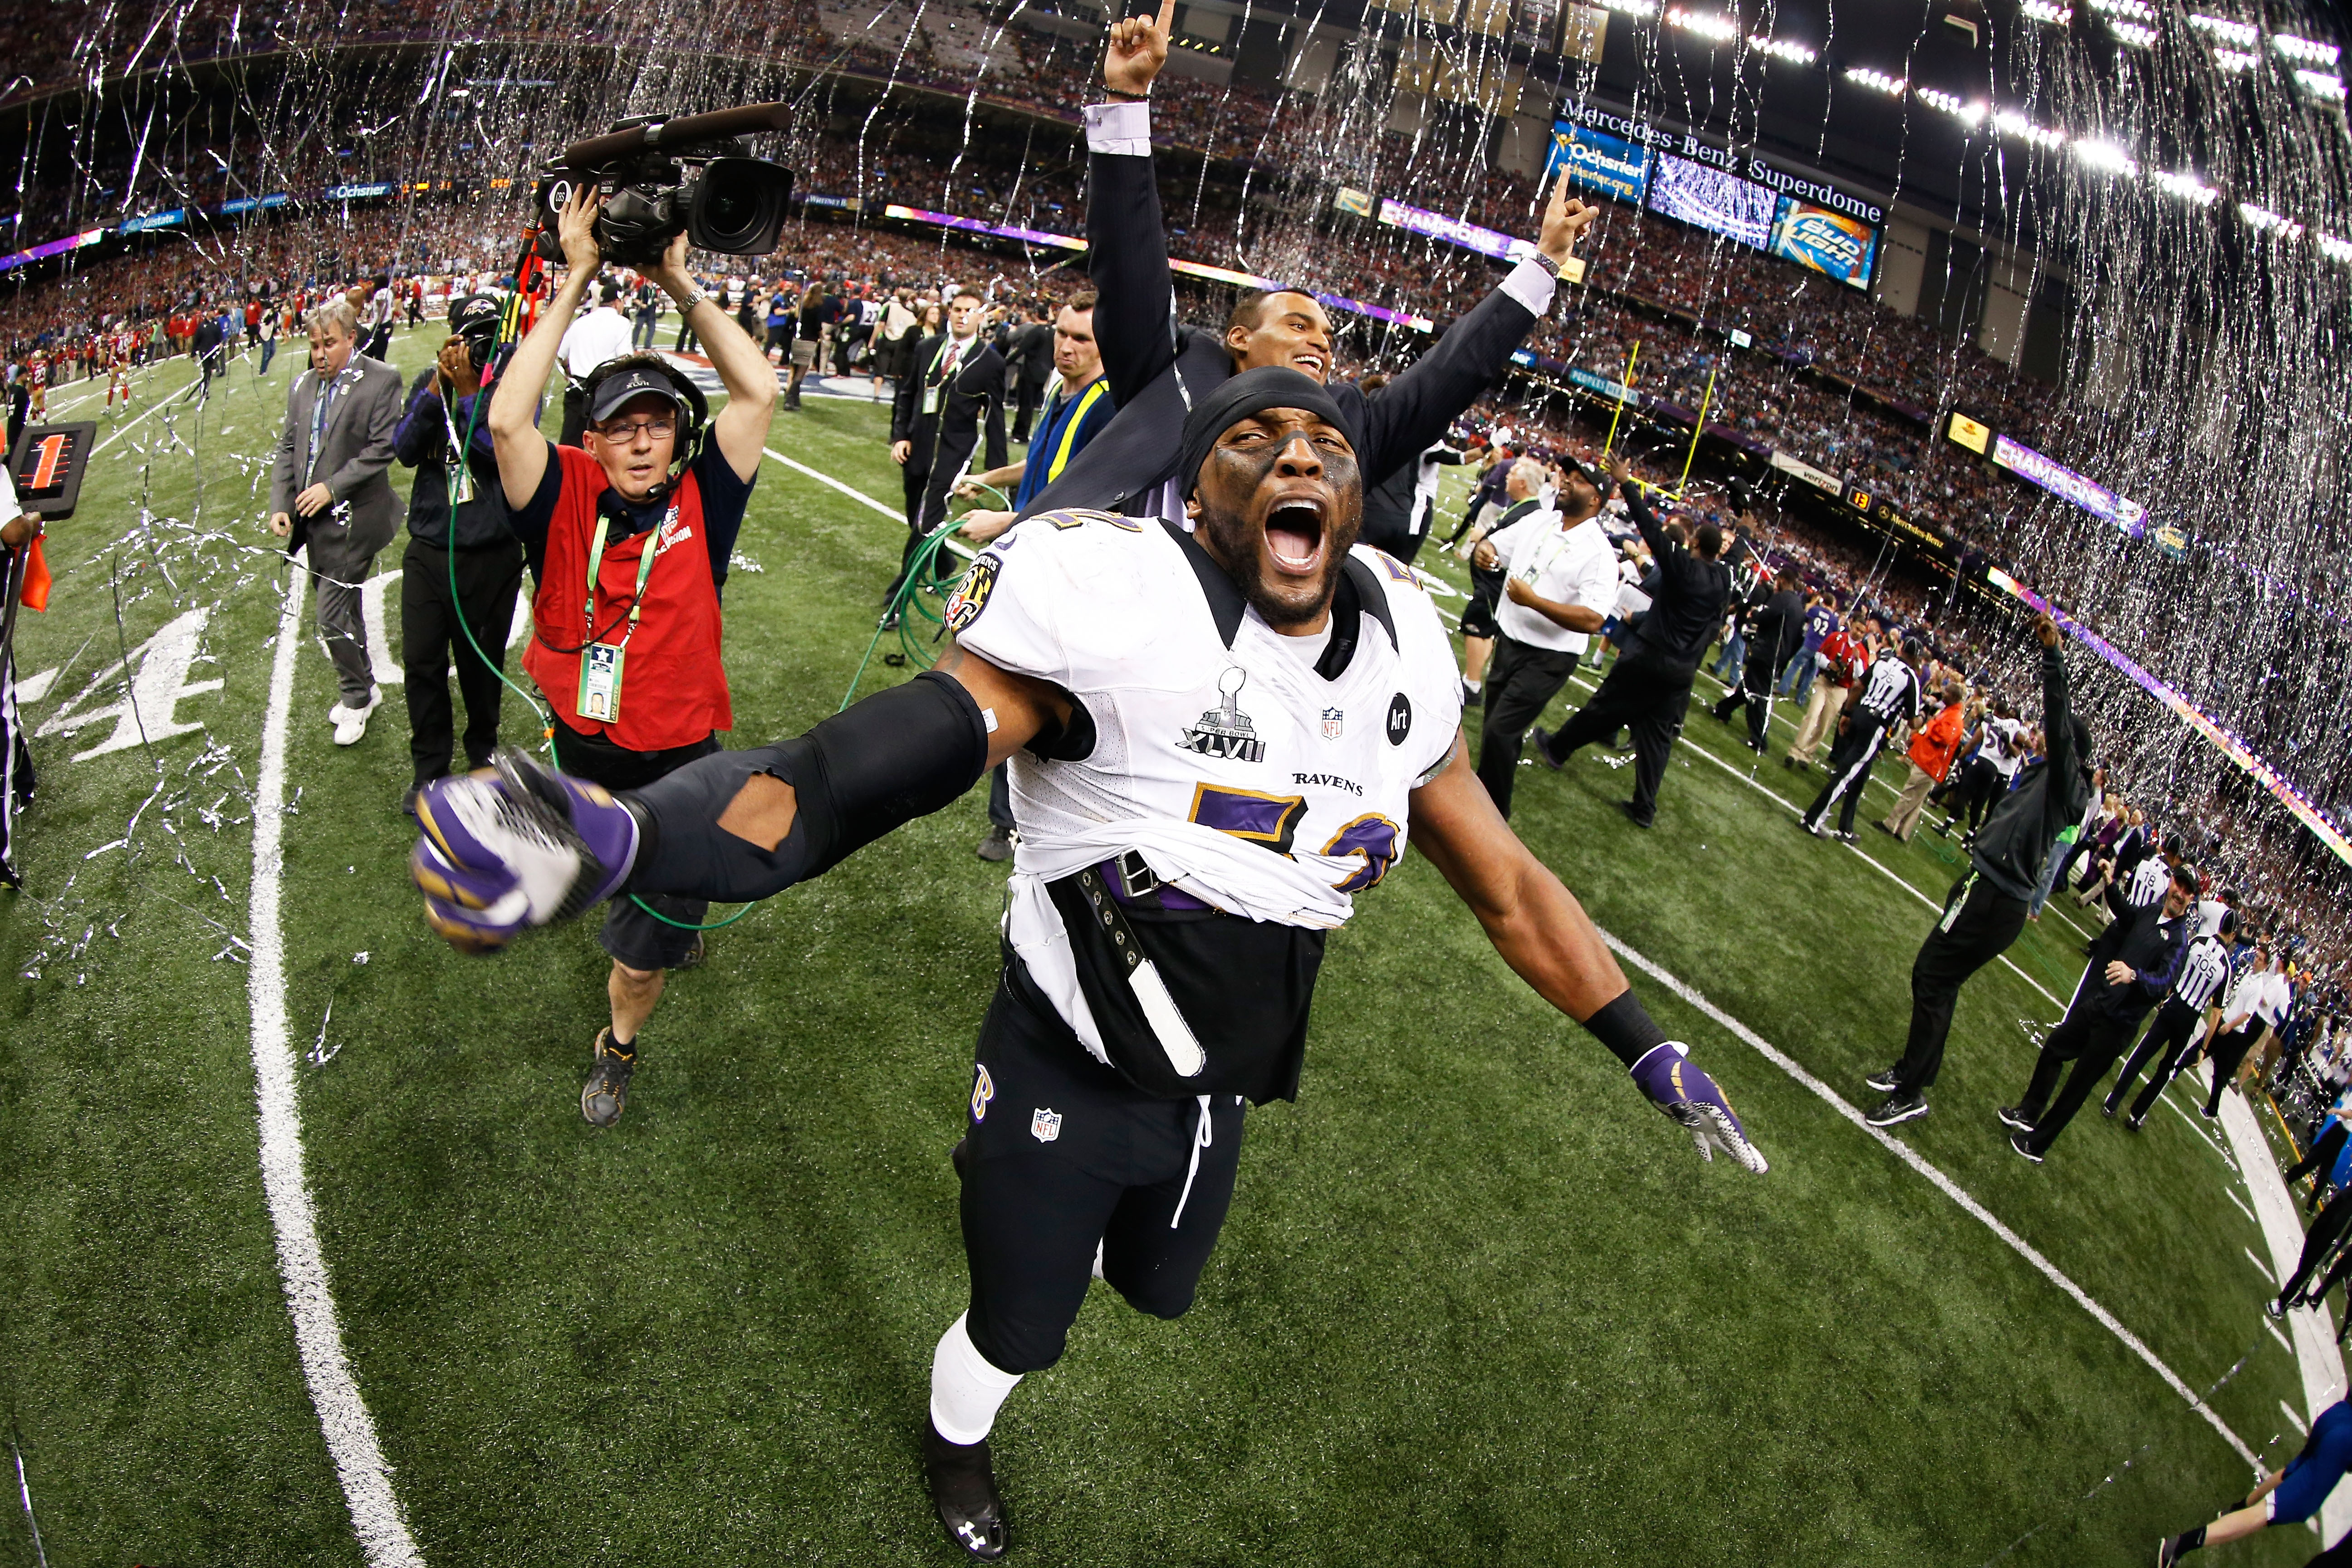 Super Bowl 2013  Ray Lewis ends brilliant career with championship ... 1e4a3a547